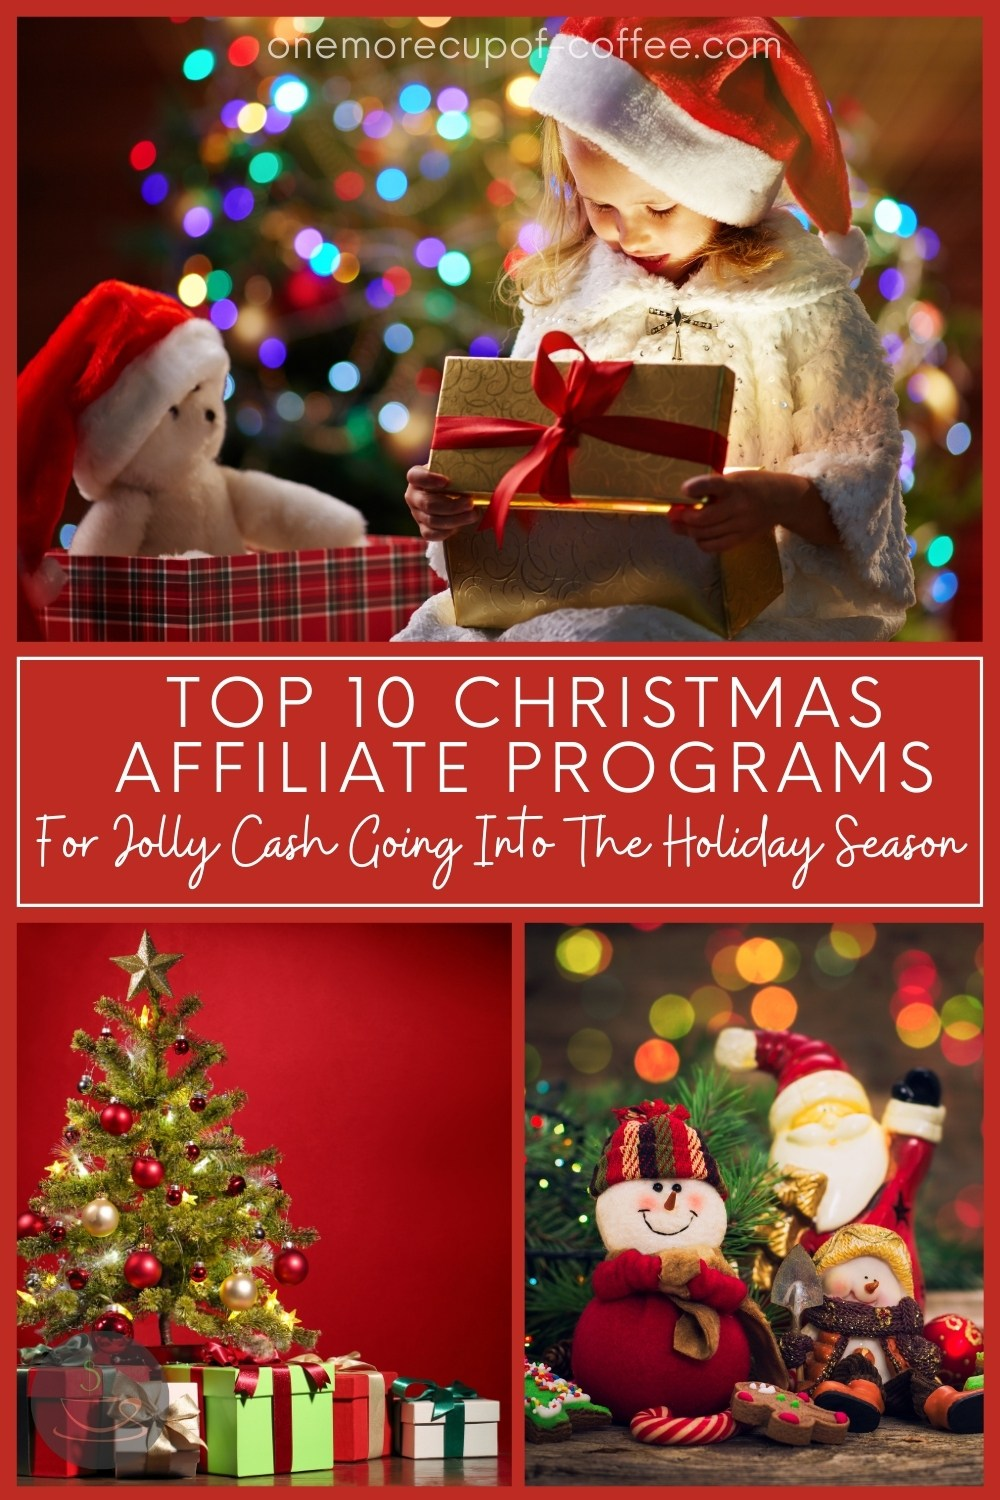 """photo collage of Christmas gifts, Christmas tree, and Christmas ornaments; with text overlay """"Top 10 Christmas Affiliate Programs For Jolly Cash Going Into The Holiday Season"""""""